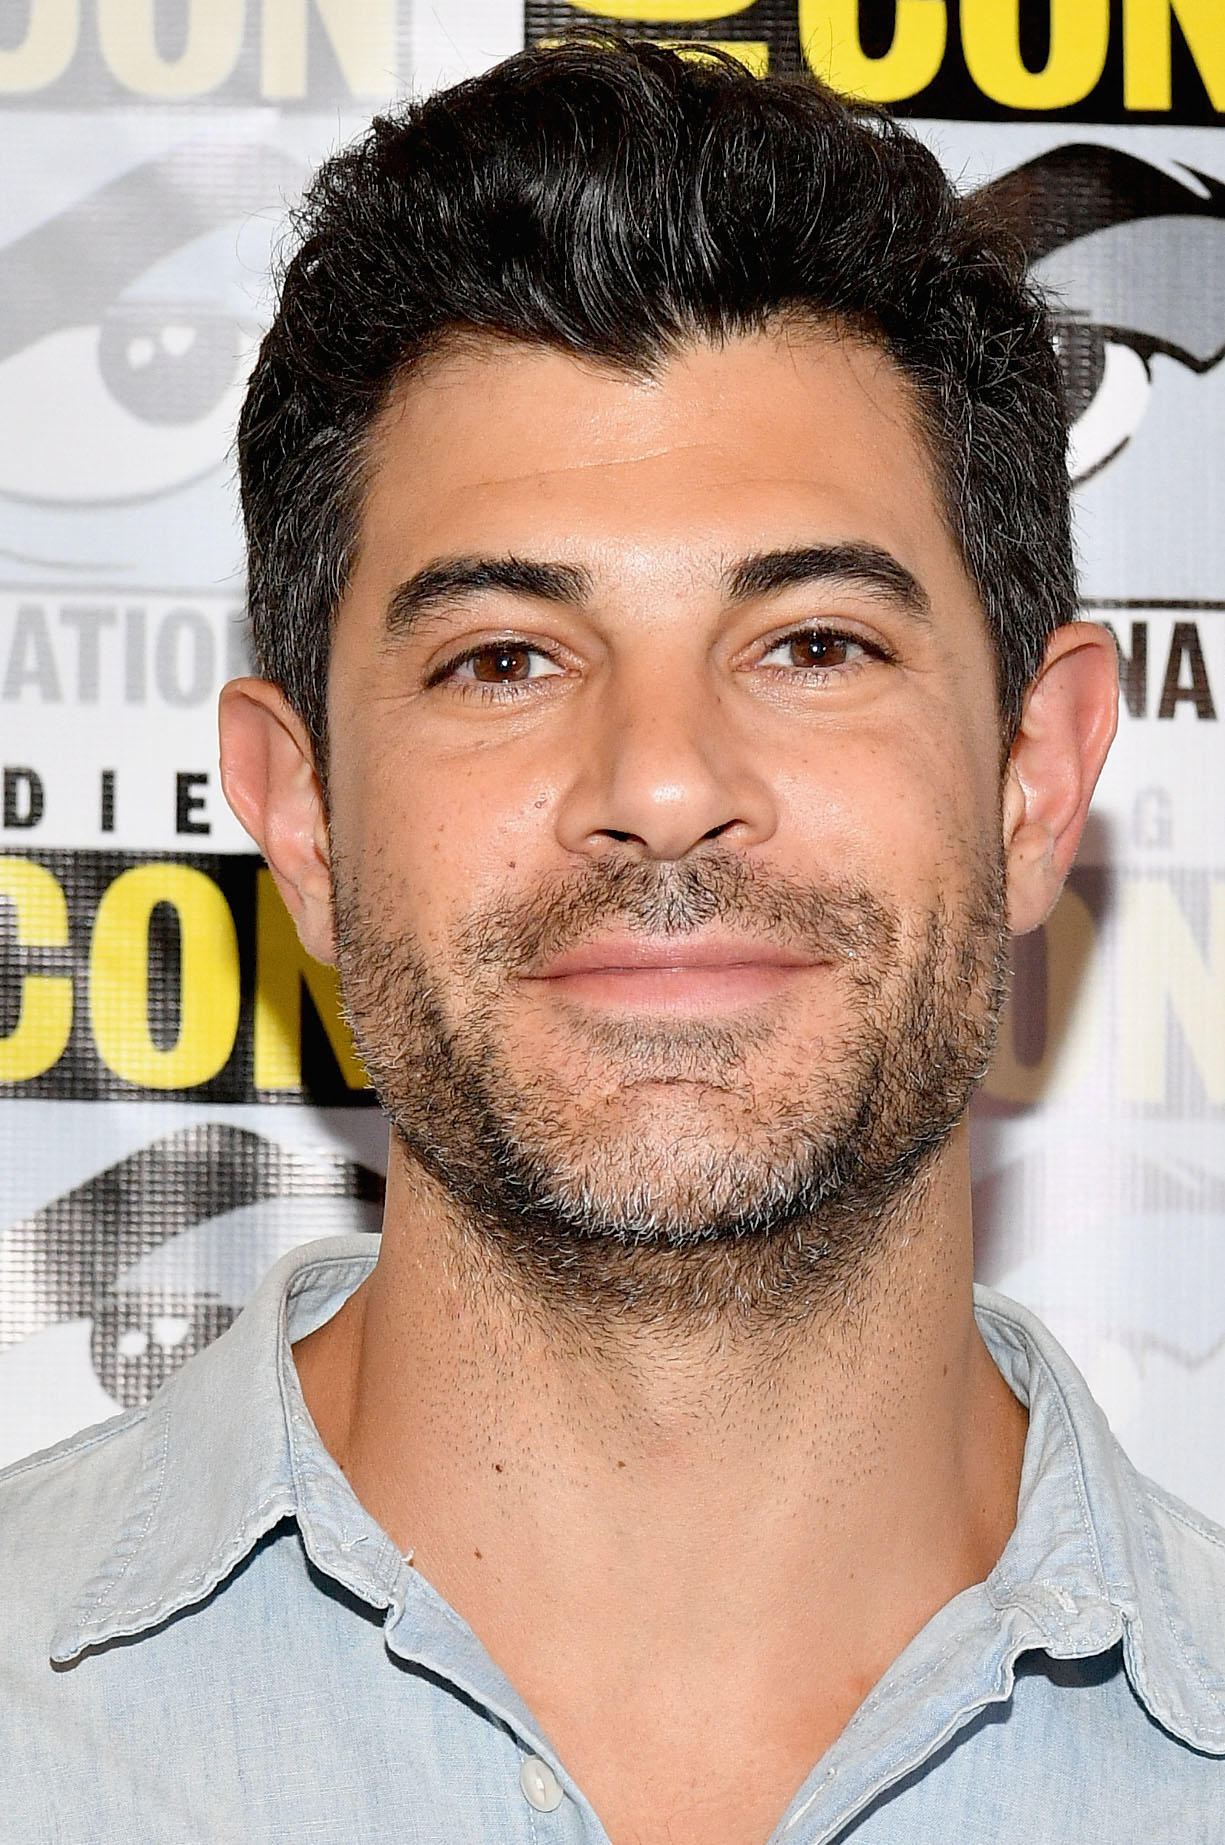 Damon Dayoub at the Freeform press line for